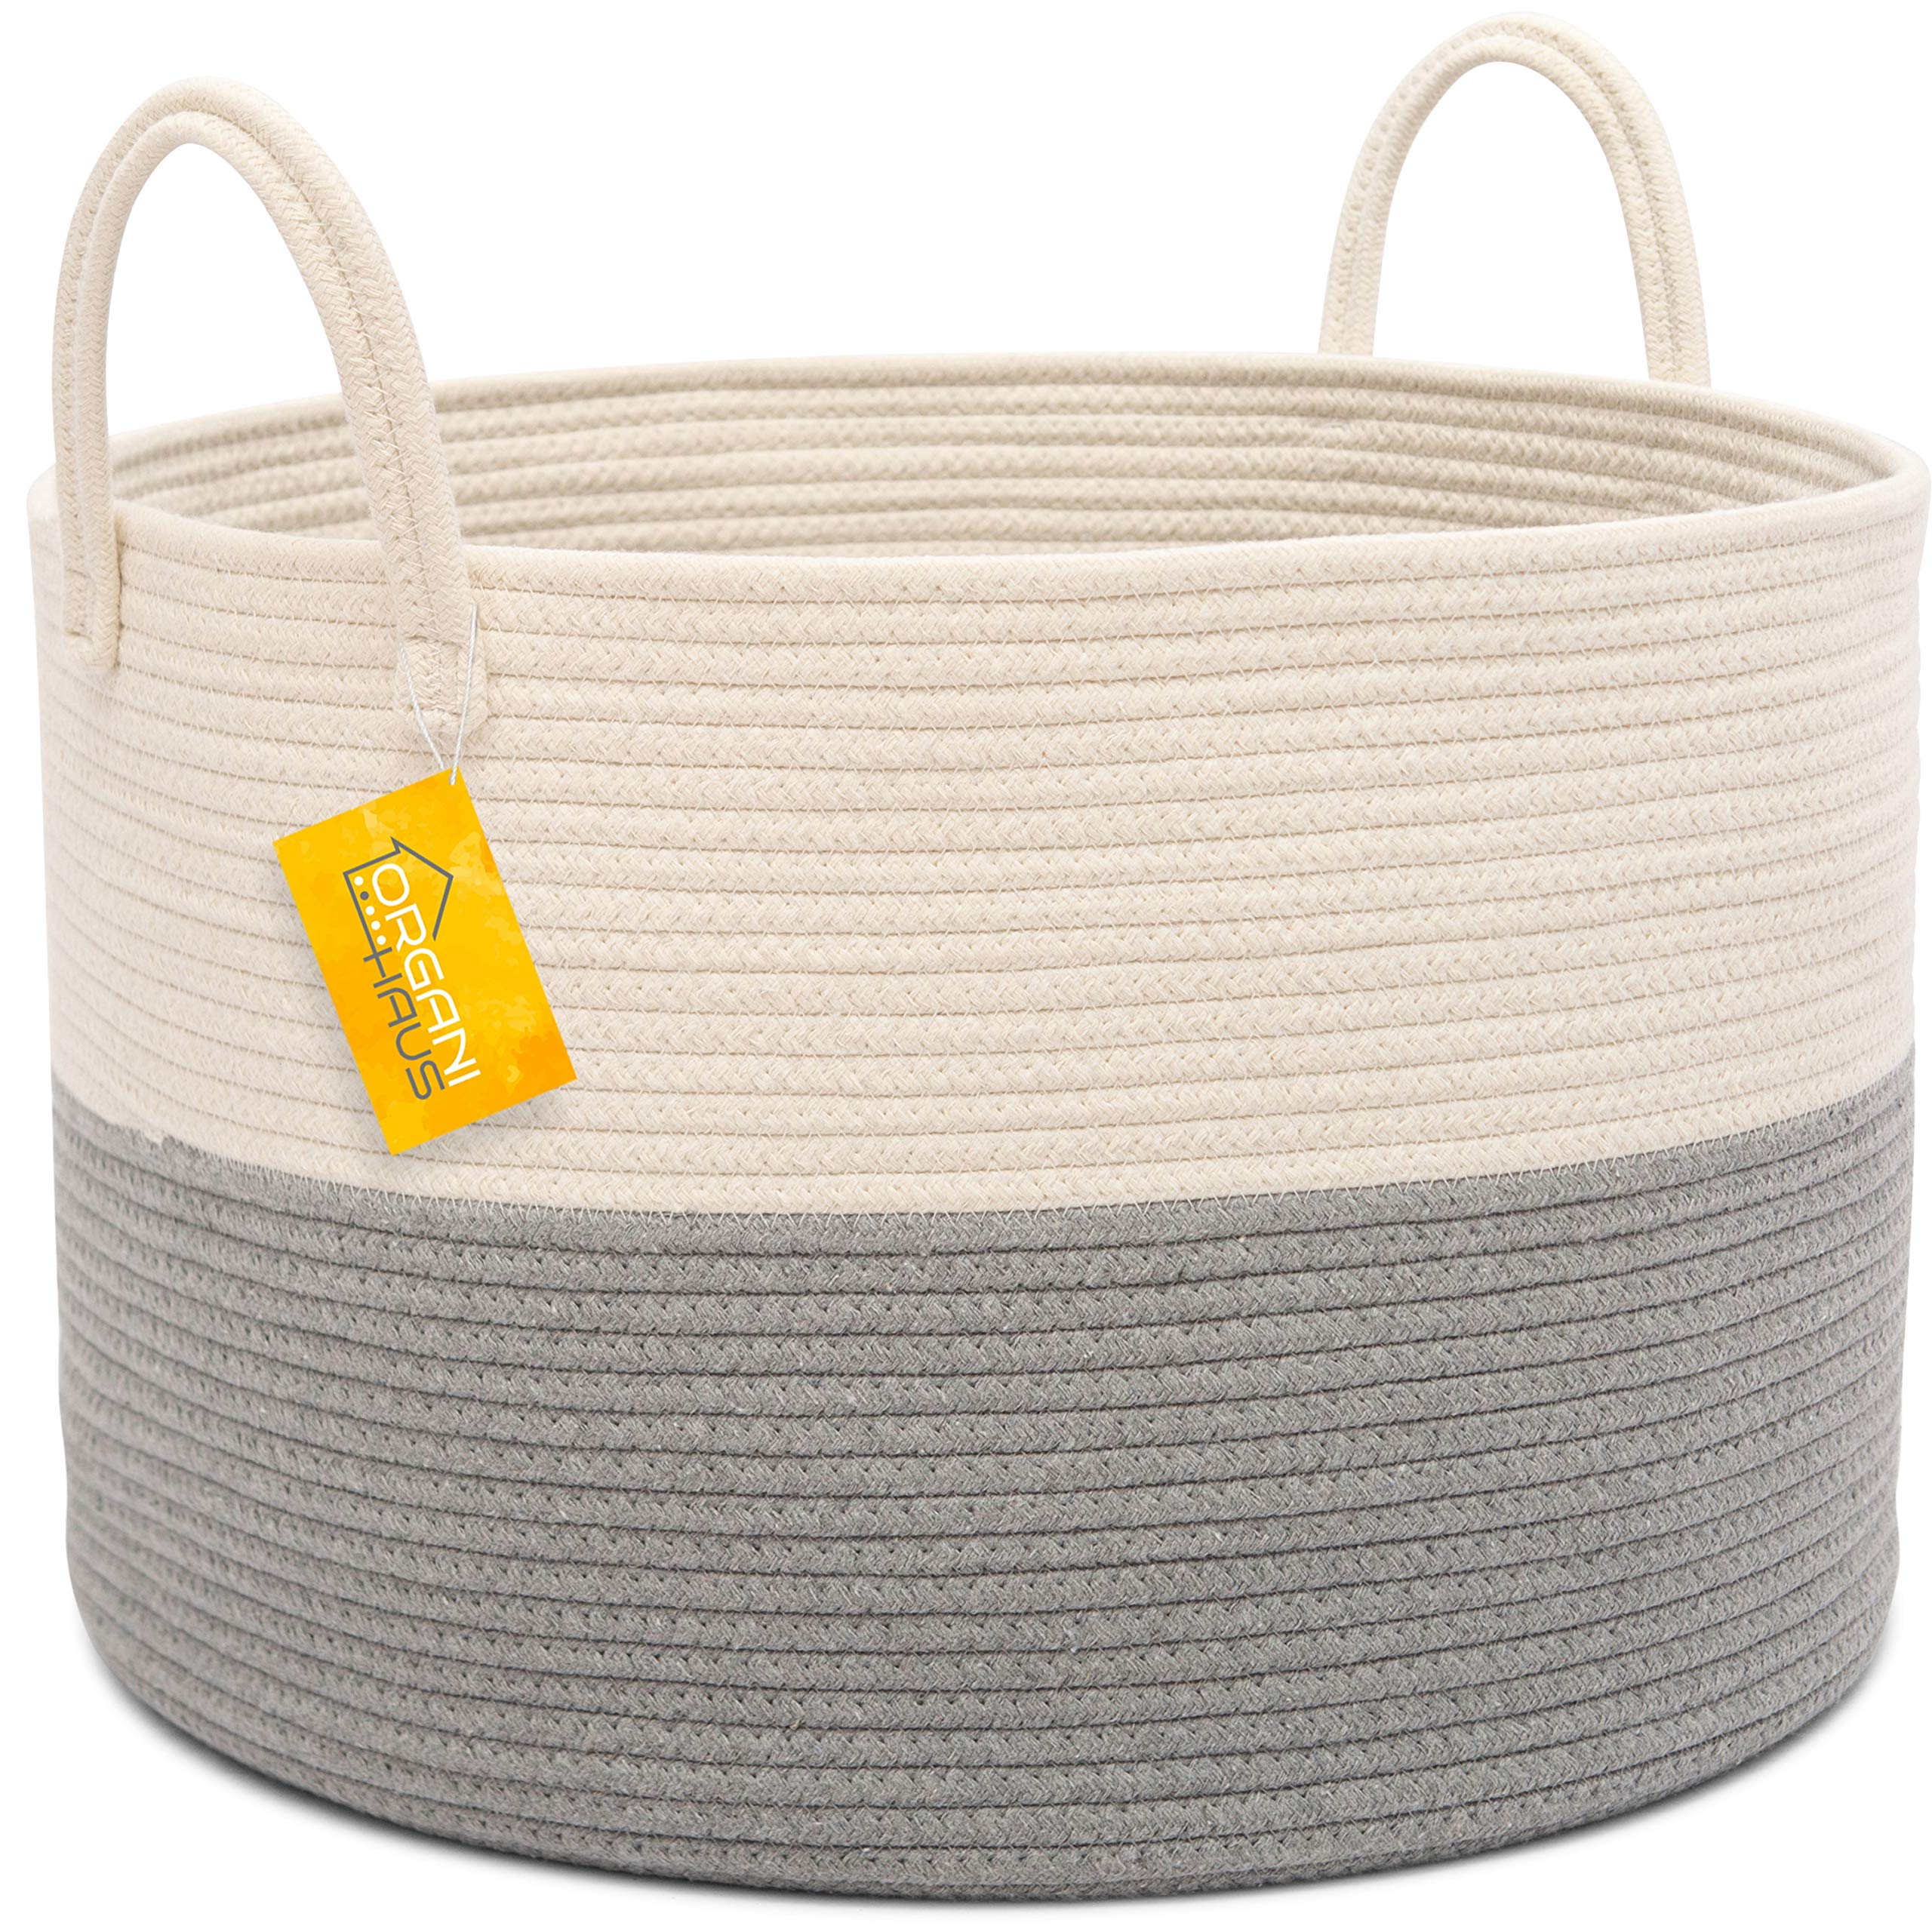 OrganiHaus XXL Extra Large Cotton Rope Basket | 20''x13.5'' Blanket Storage Basket with Long Handles | Decorative Clothes Hamper Basket by OrganiHaus